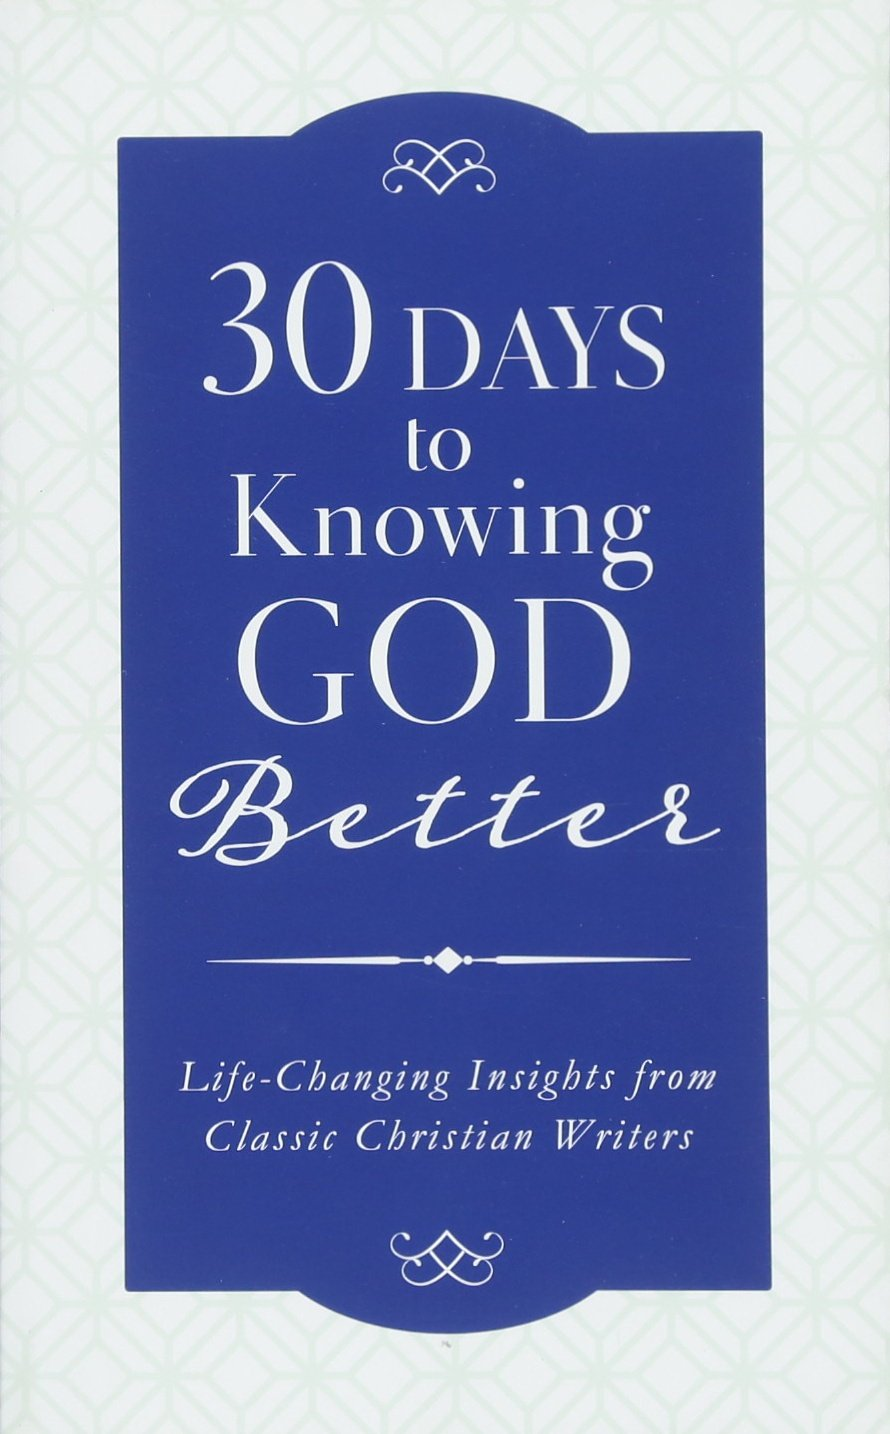 Download 30 Days to Knowing God Better: Life-Changing Insights from Classic Christian Writers PDF